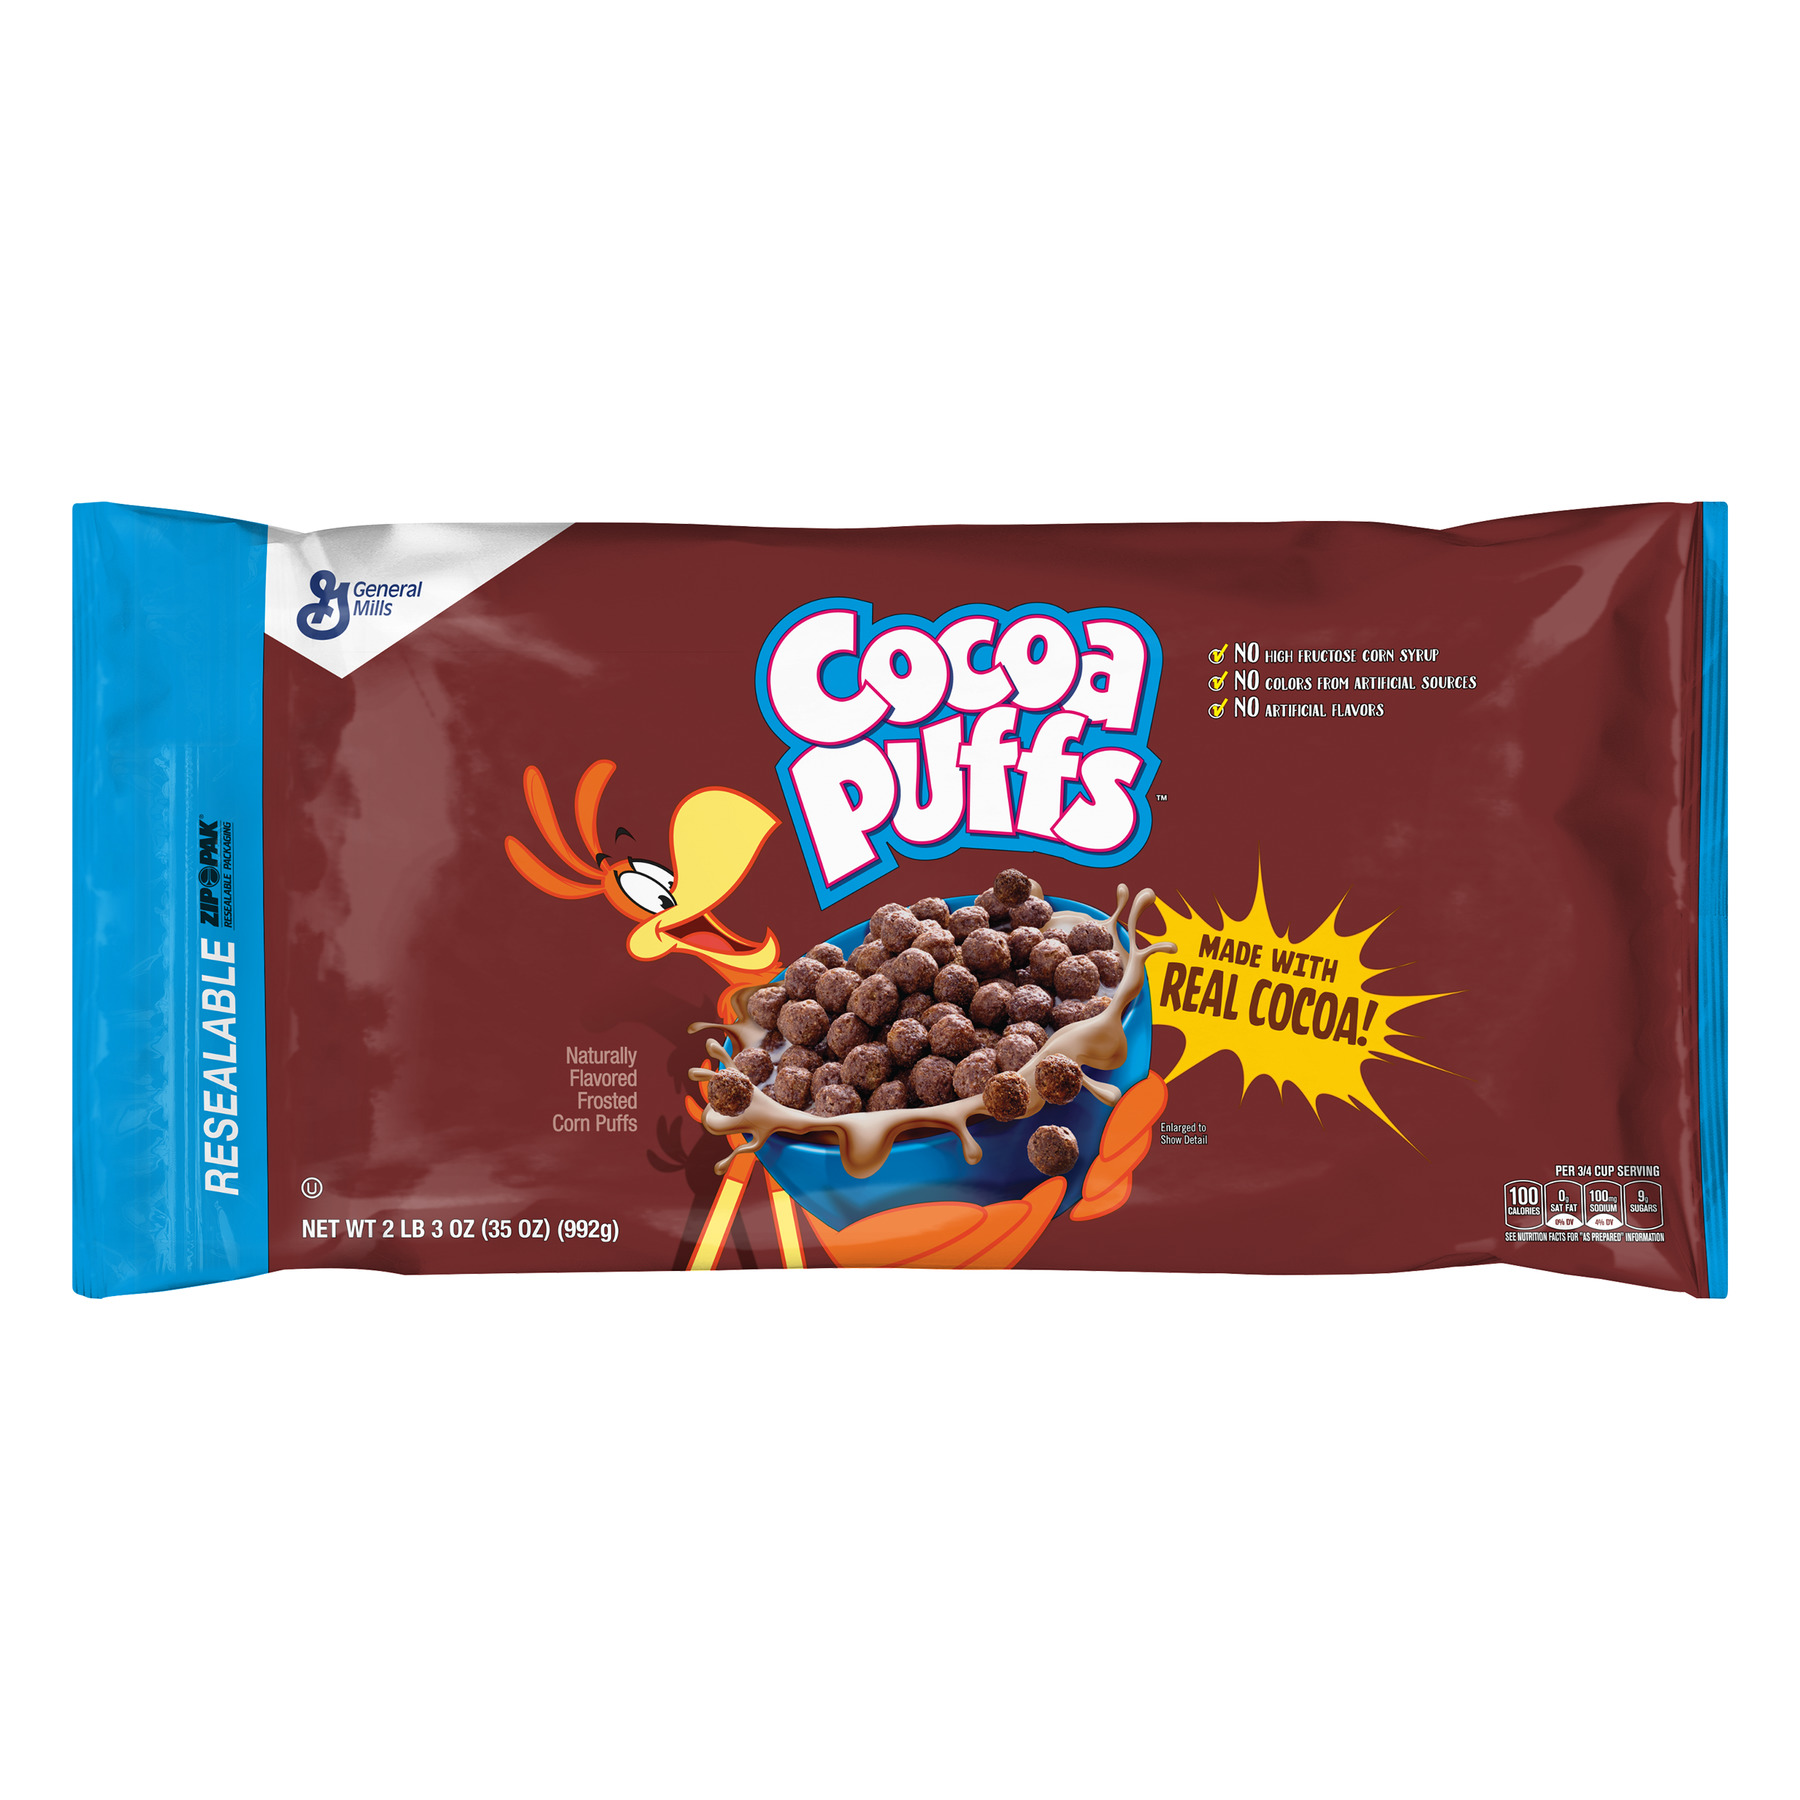 (2 Pack) Cocoa Puffs Cereal, Chocolate, 35 Oz Bag